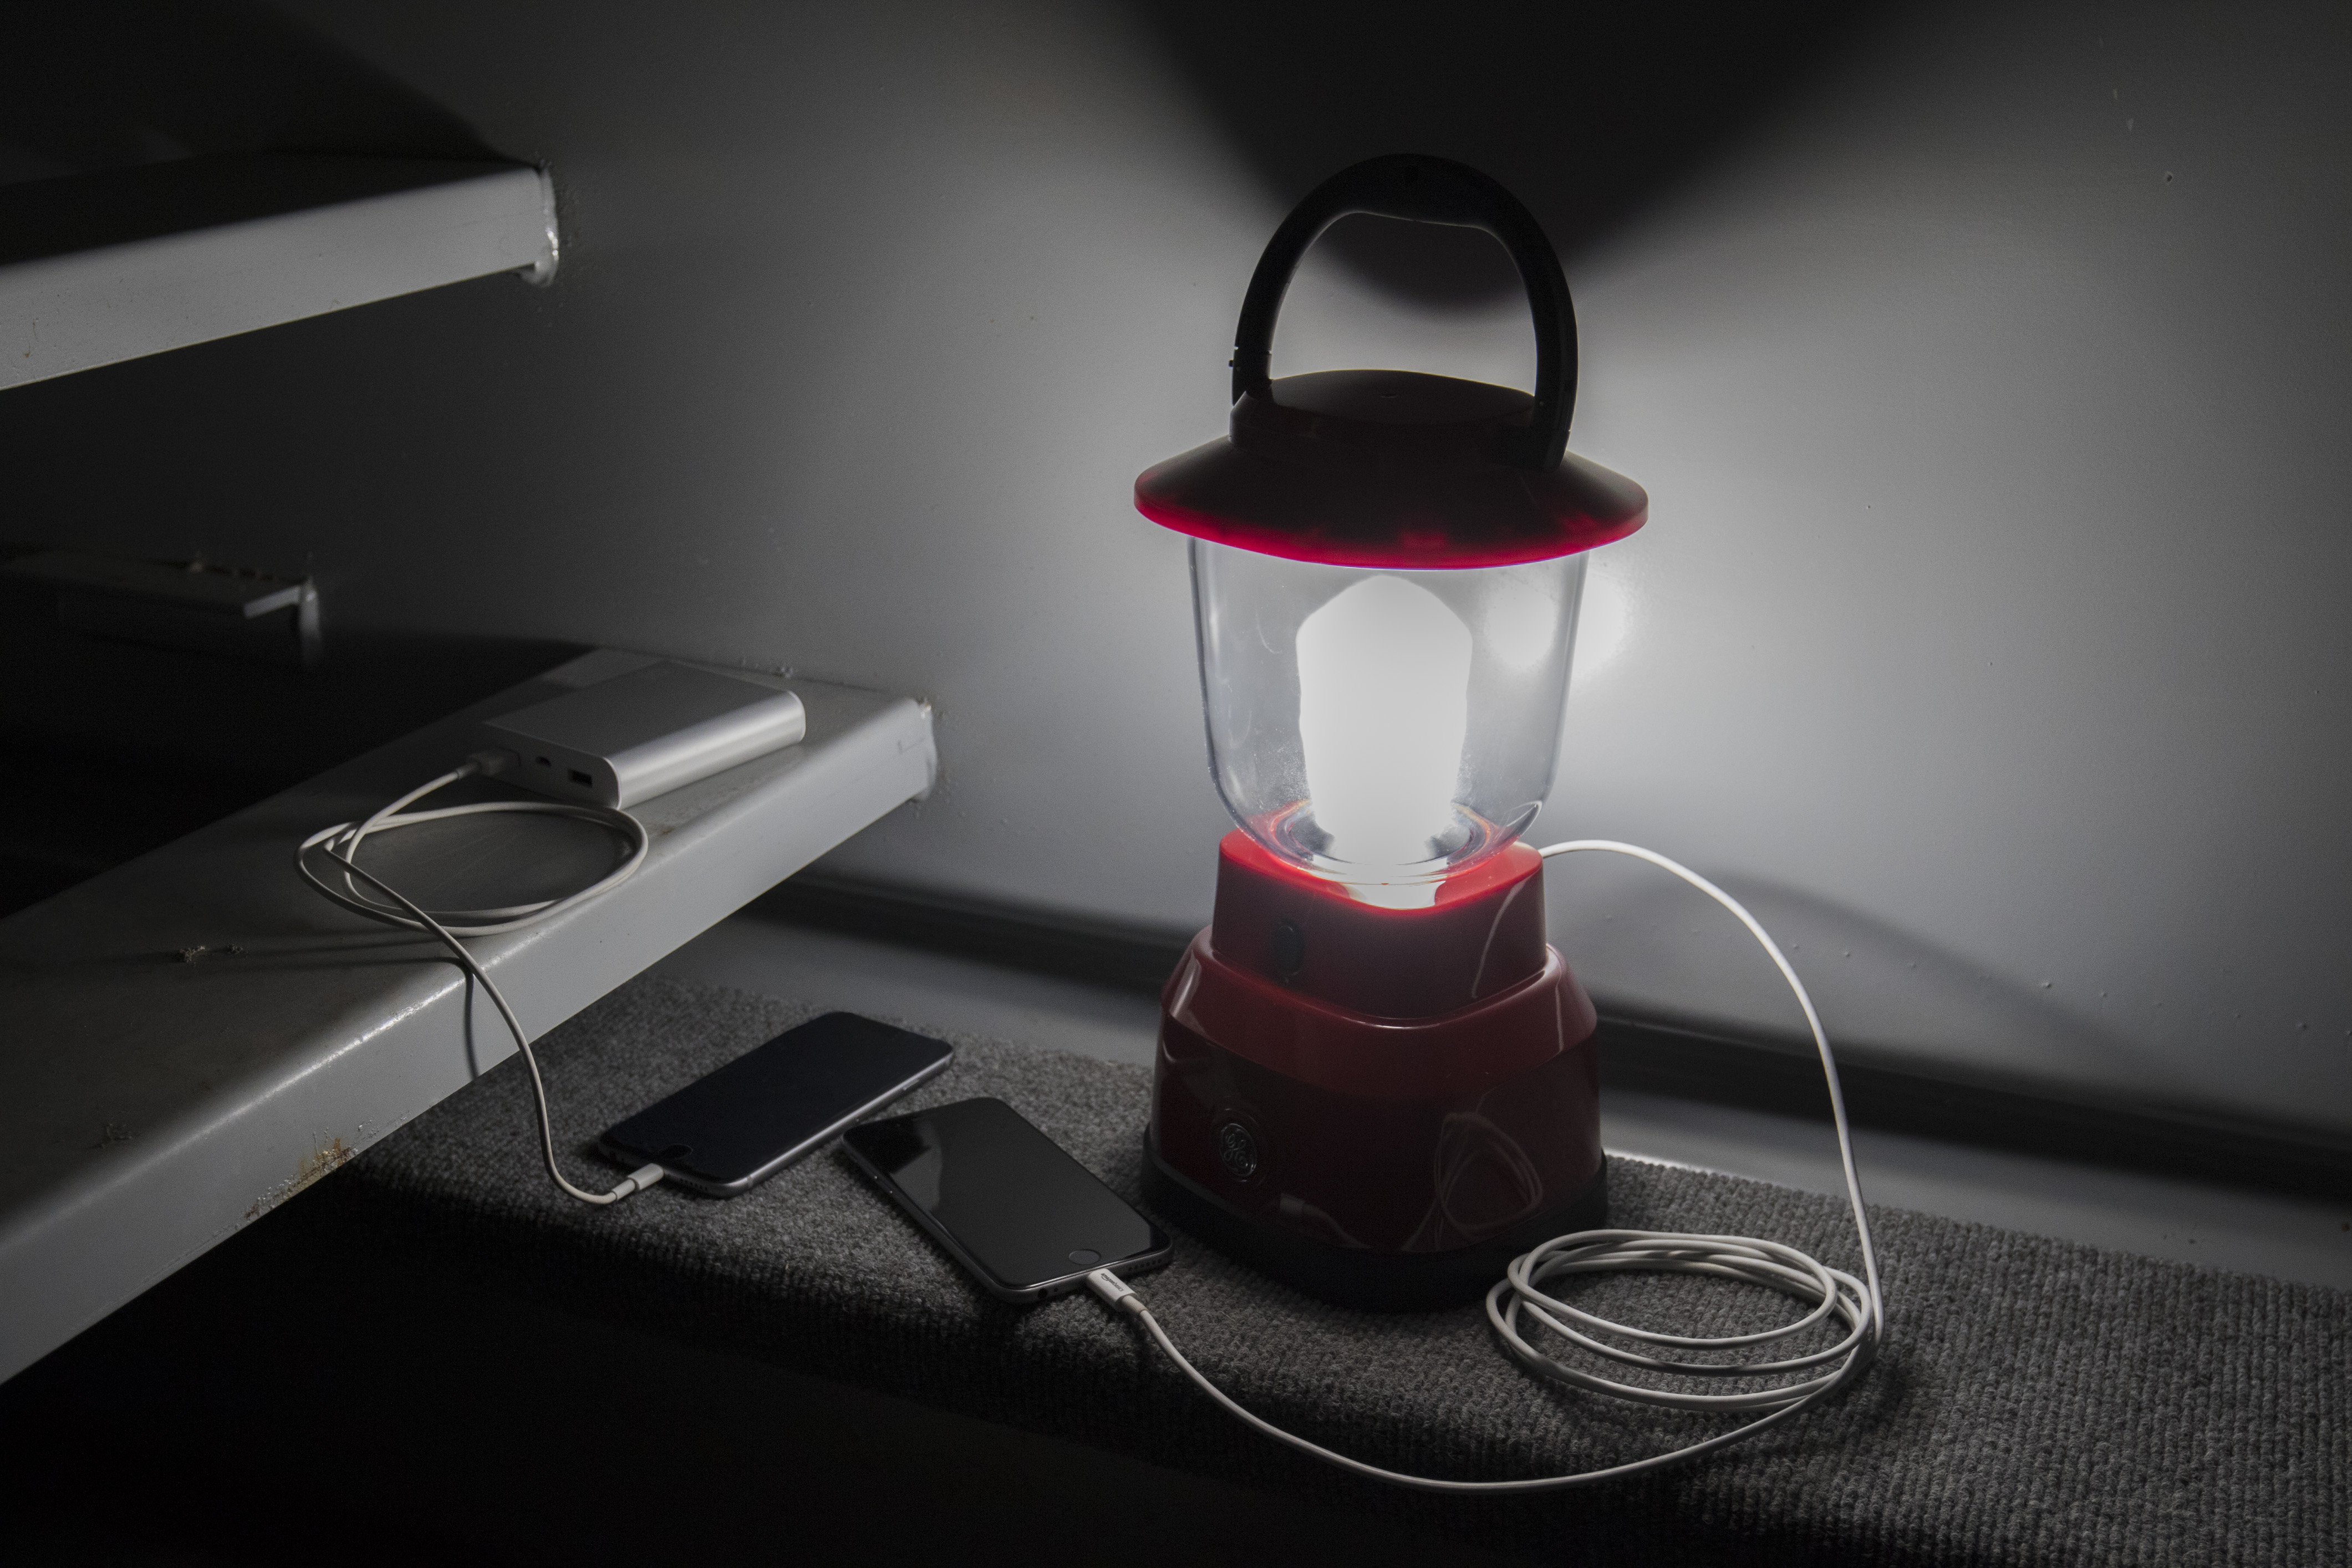 Pick up an EcoSurvivor LED lantern that does double duty with a built-in USB charging port.